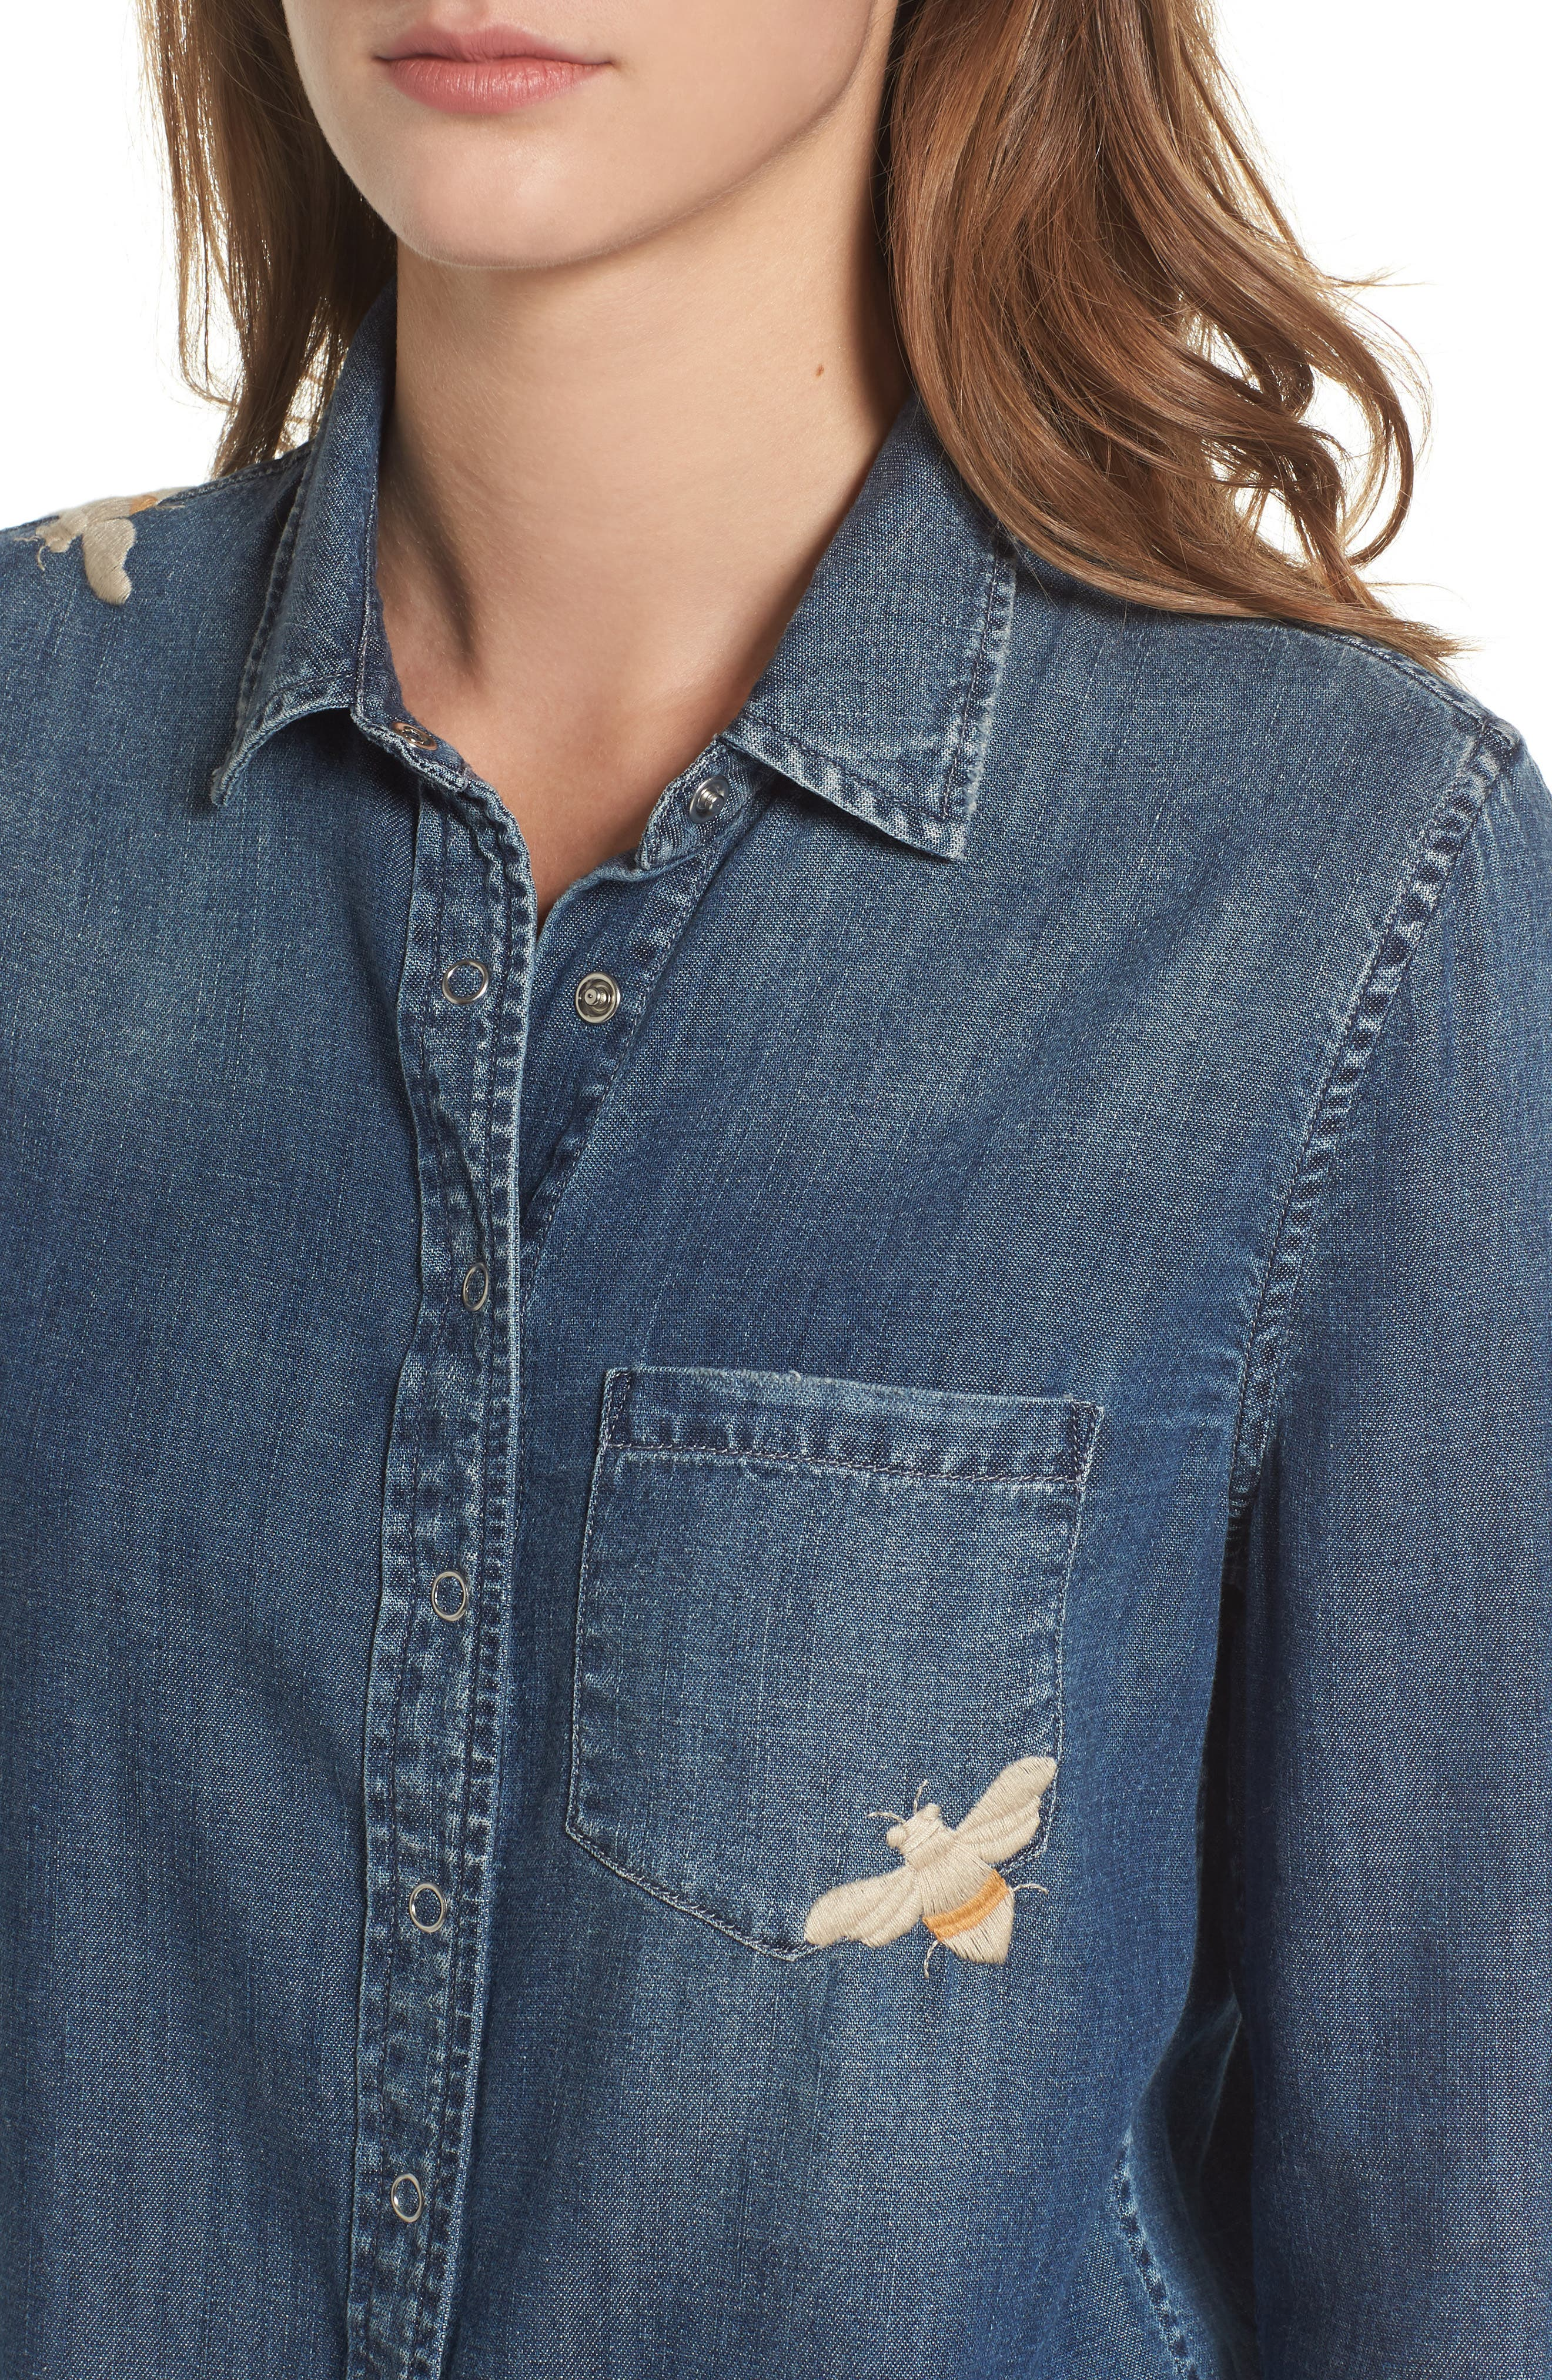 Joanna Embroidered Denim Shirt,                             Alternate thumbnail 4, color,                             West Coast Embroidered